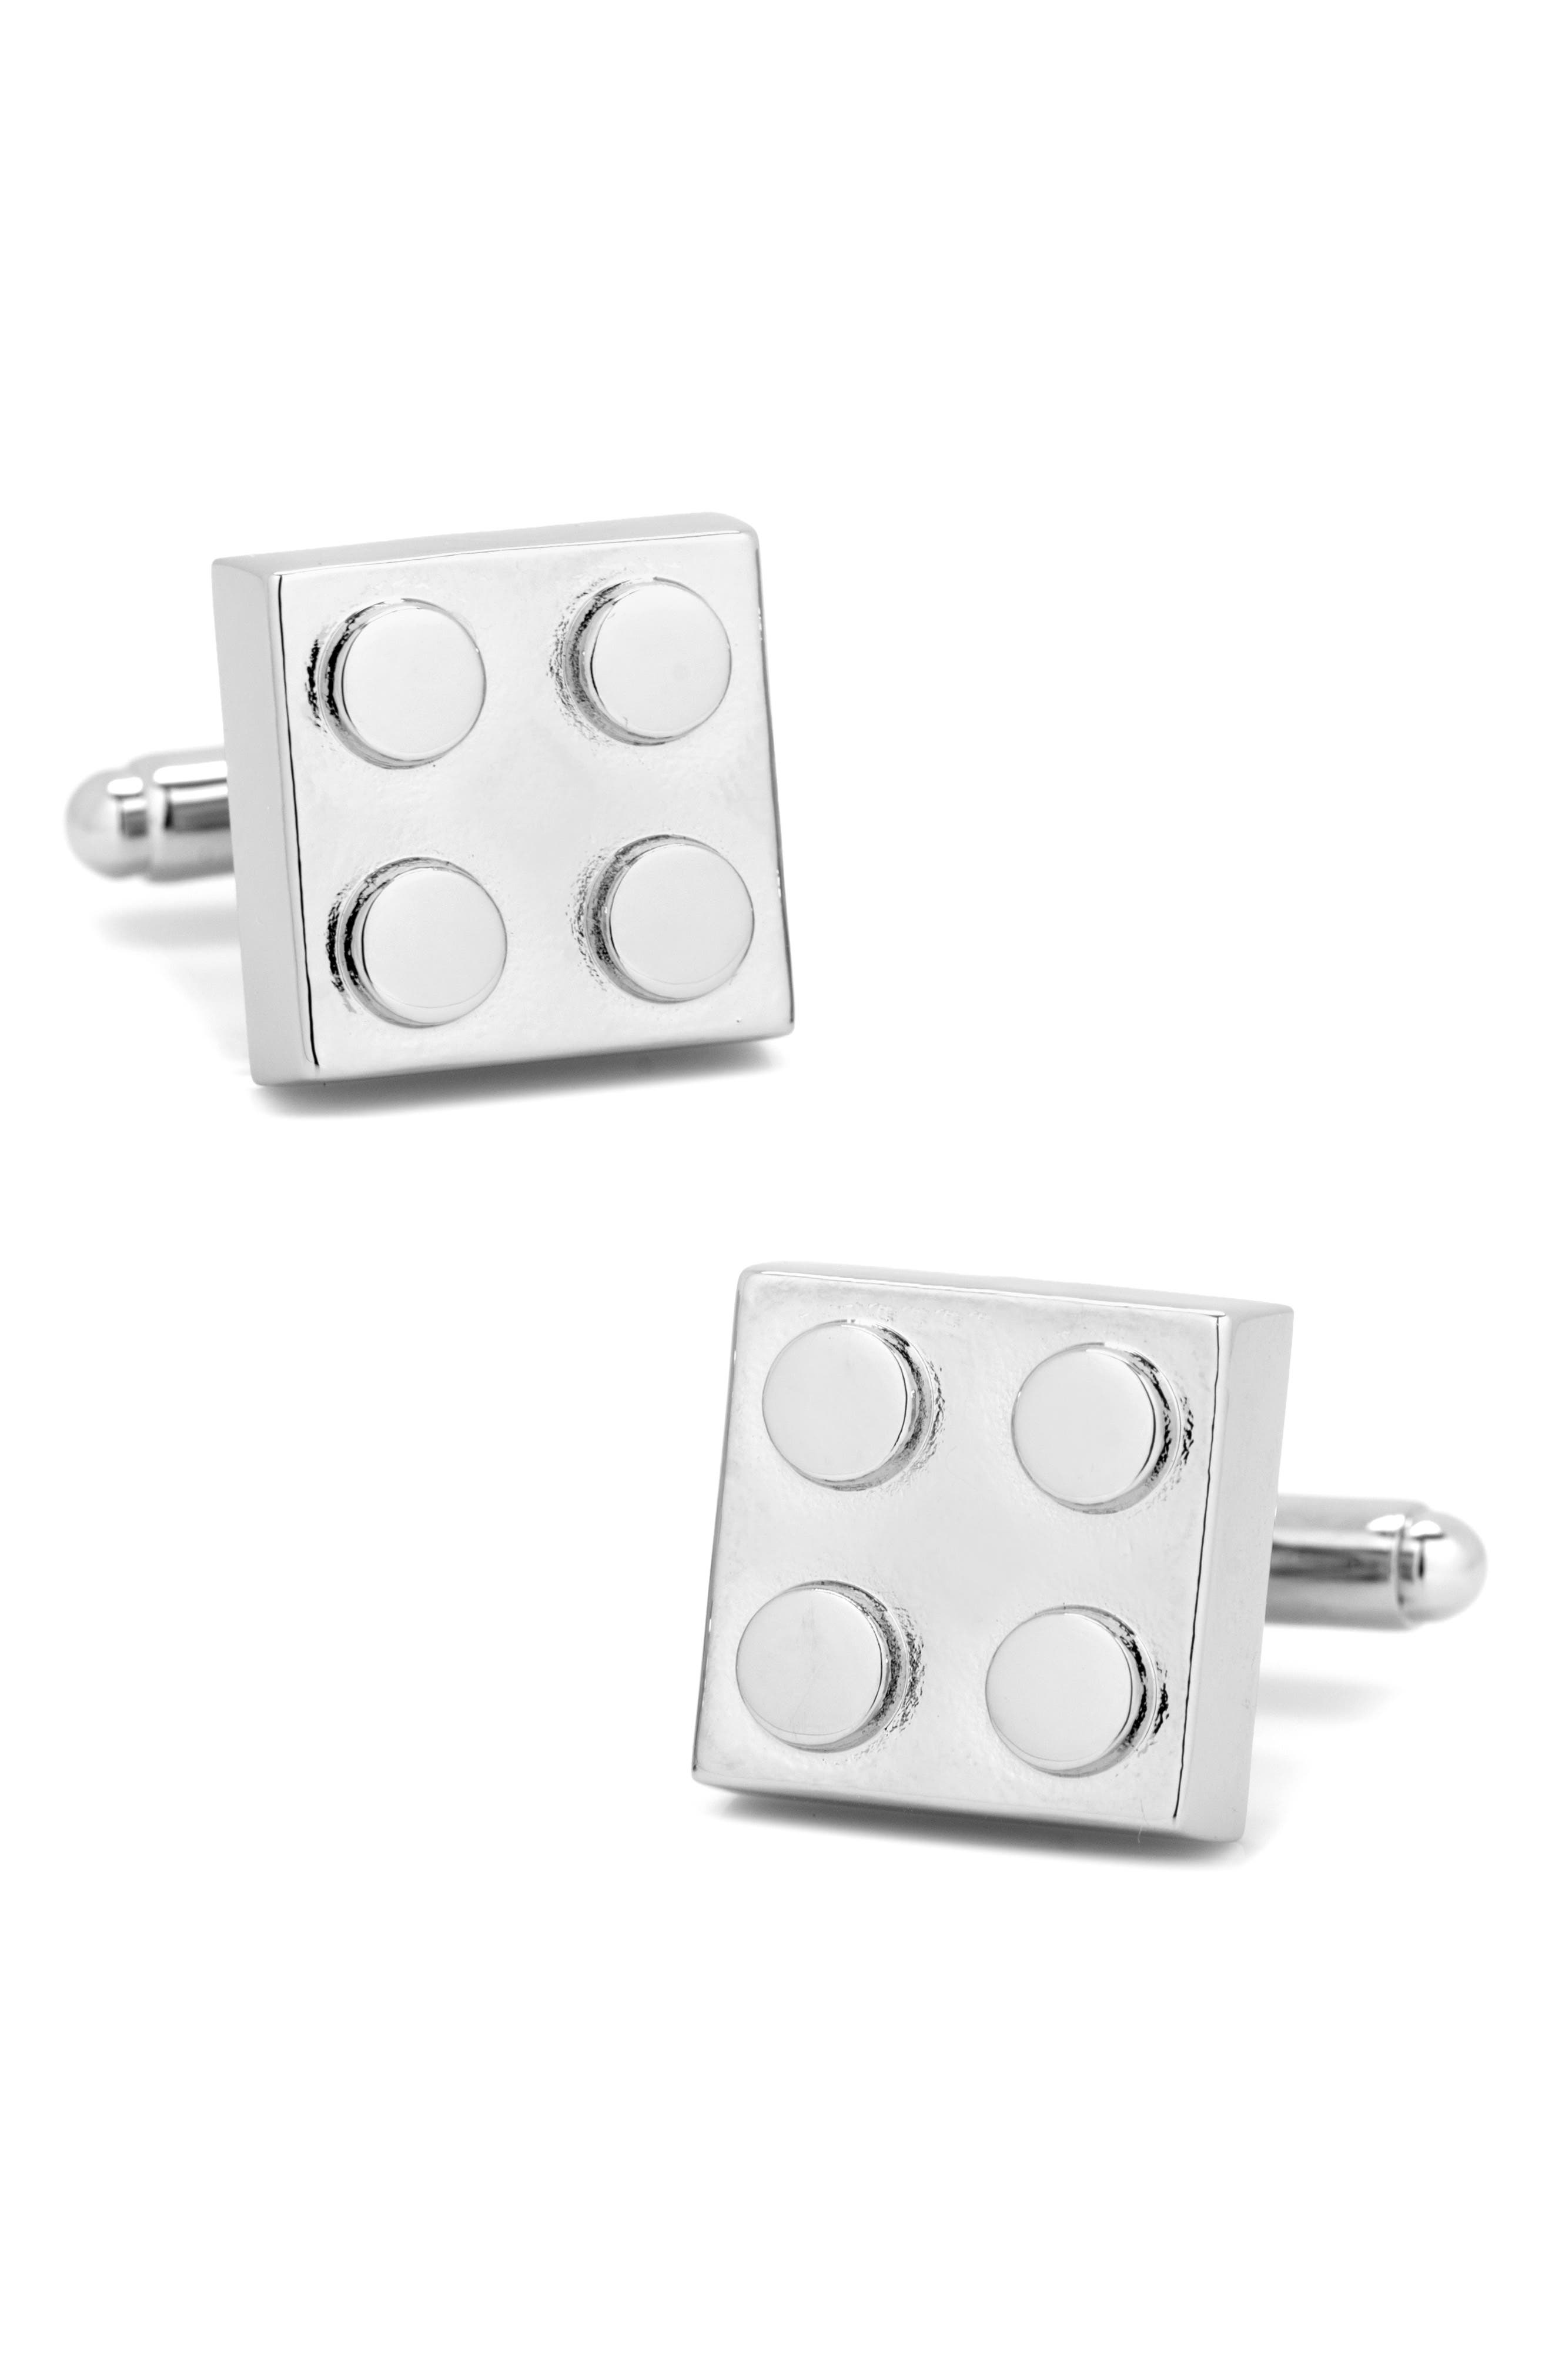 Building Block Cuff Links,                             Main thumbnail 1, color,                             METALLIC SILVER